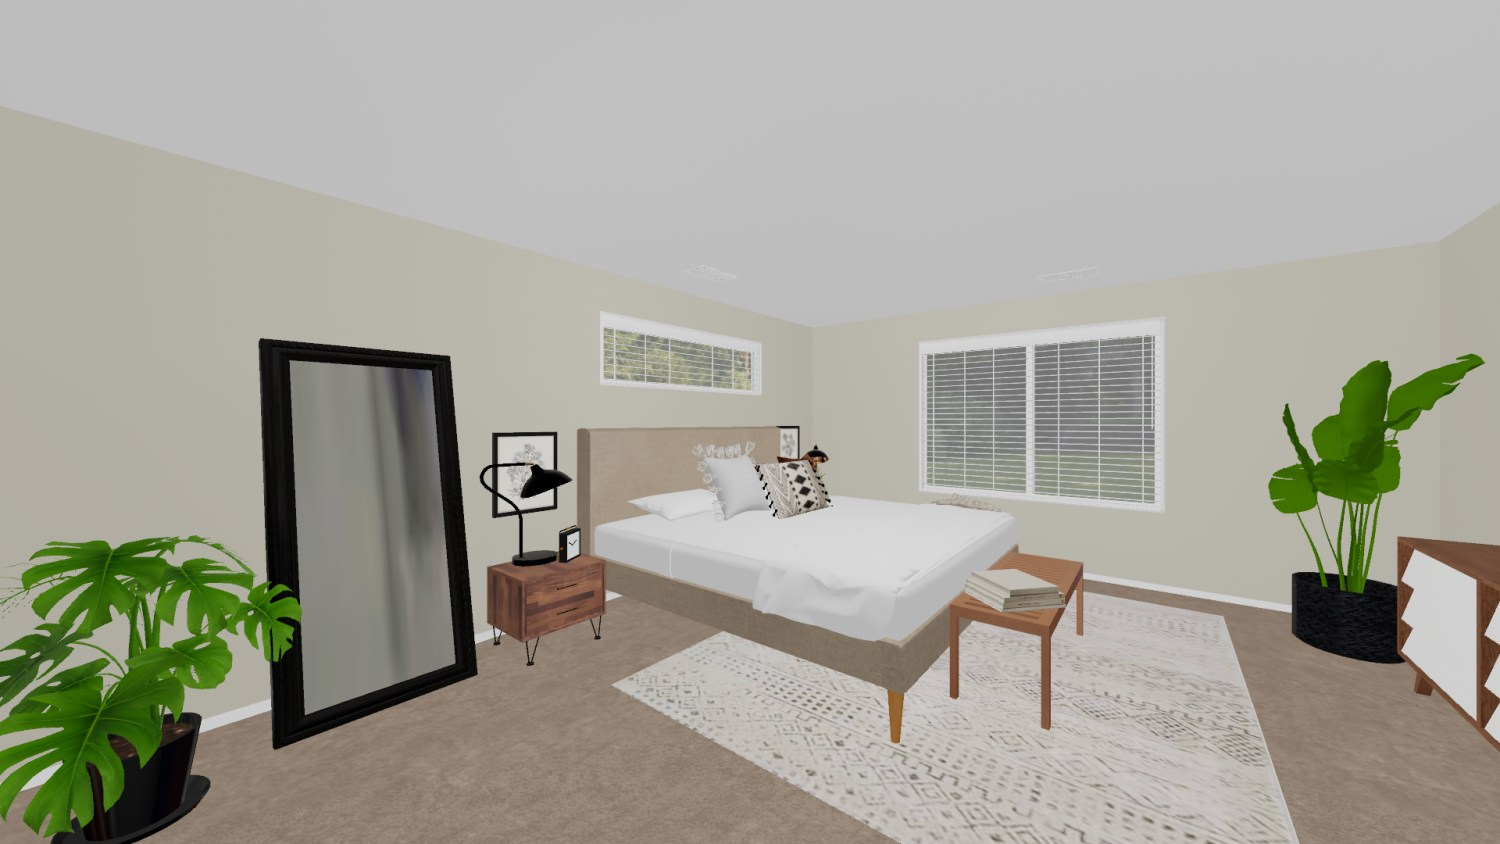 3D Design For Kayla Hoener New Bedroom View